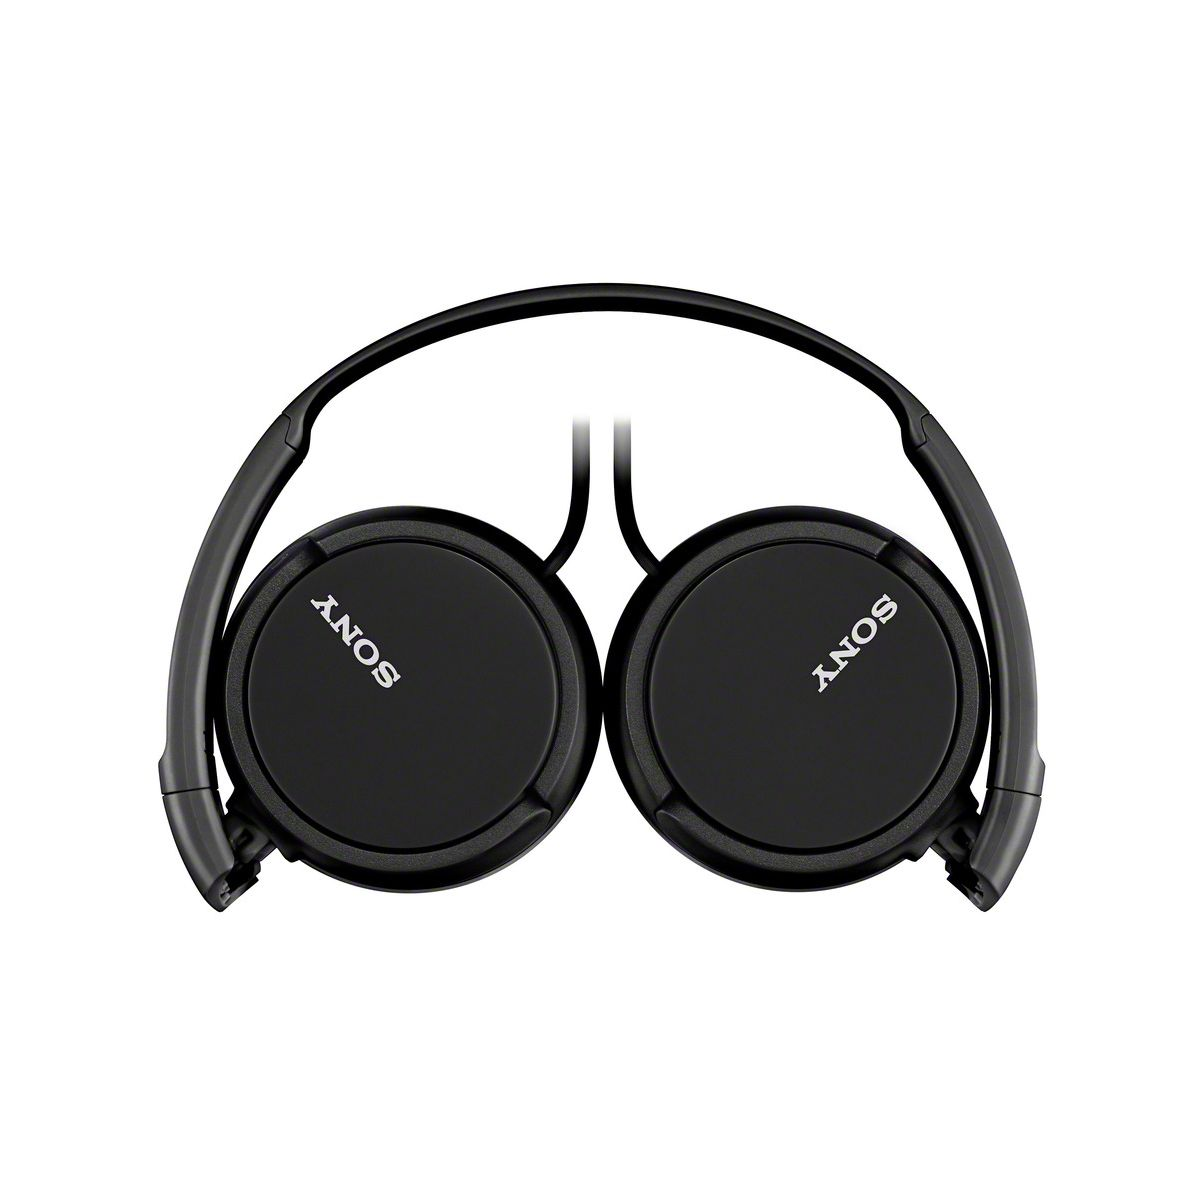 Casque audio sony mdrzx110 noir